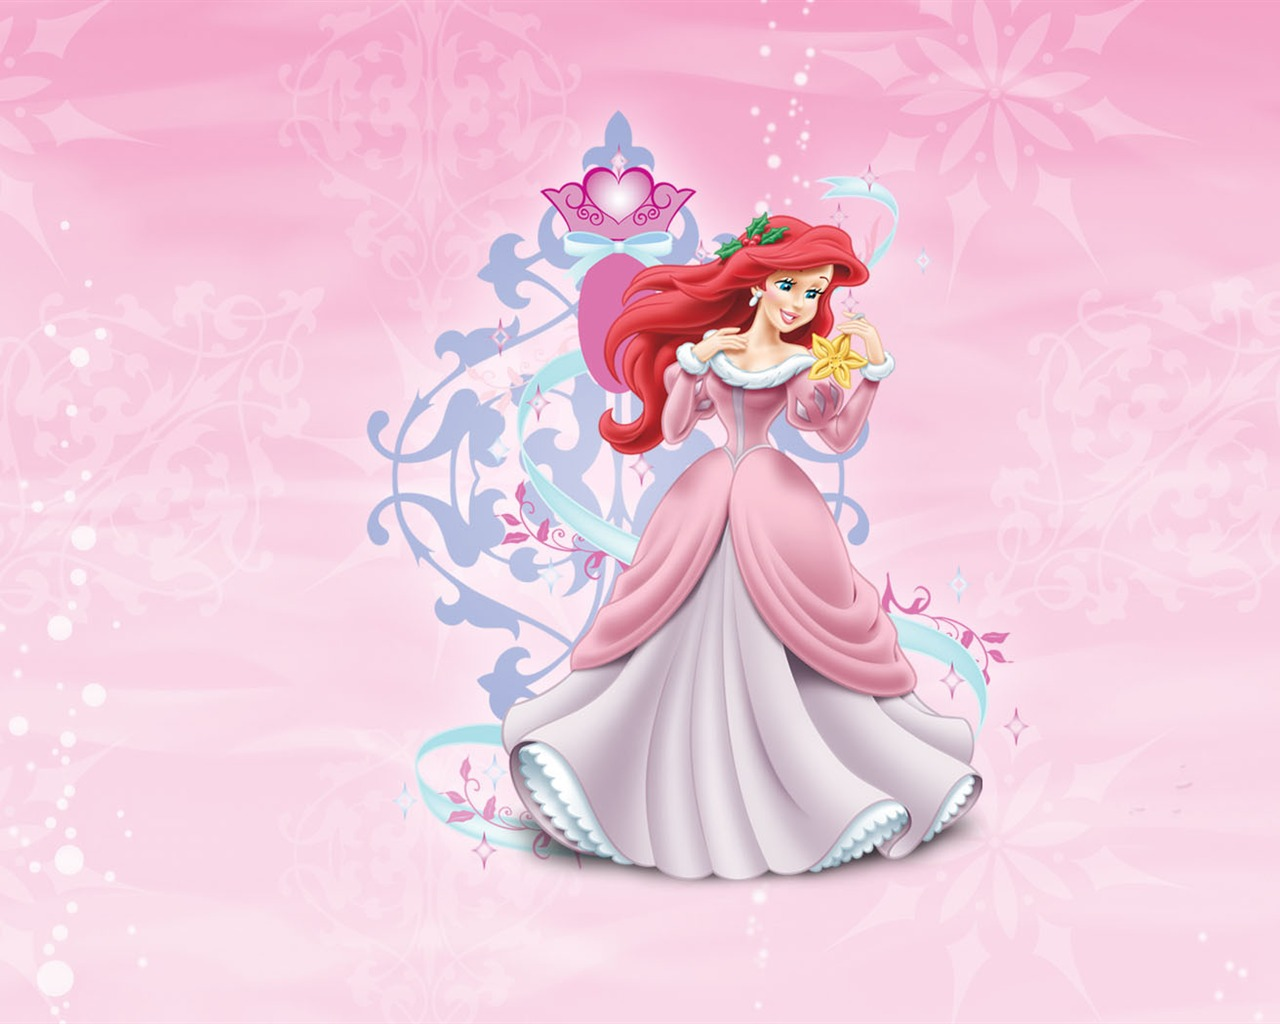 Cute Dolls Wallpapers With Quotes Disney Princess Hd Wallpapers High Definition Free